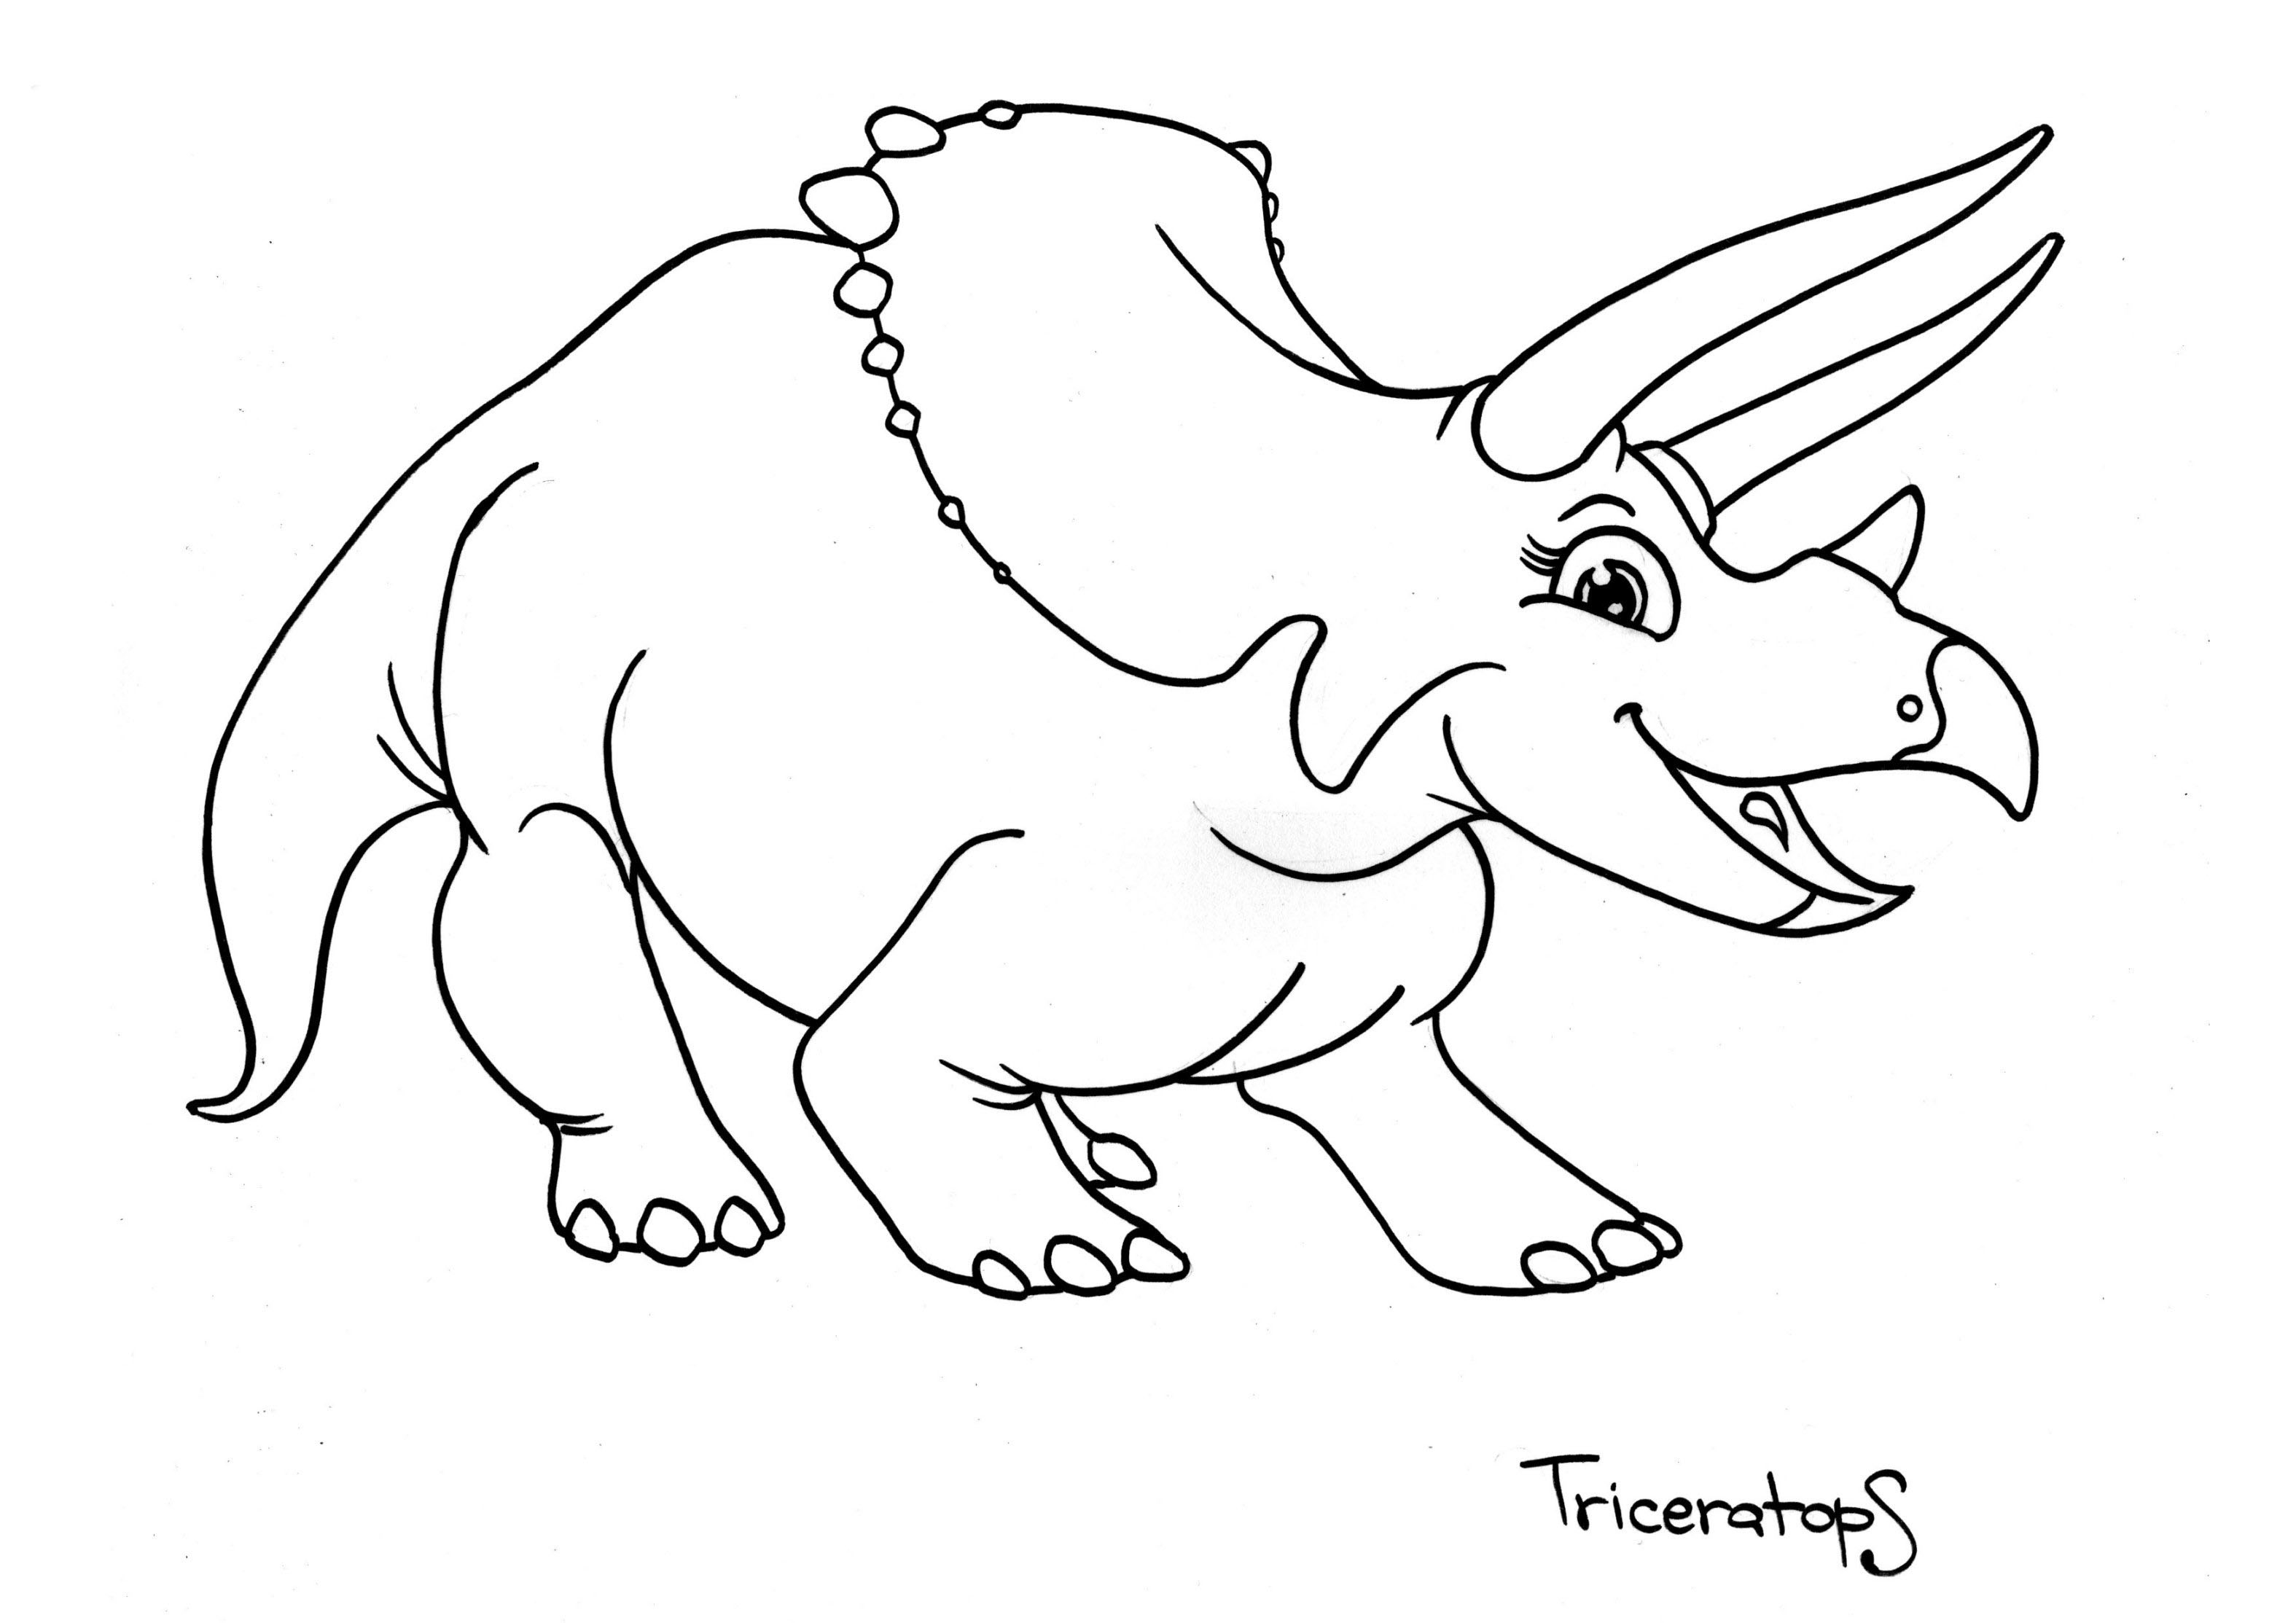 dinosaur pictures to print for free extinct animals 36 printable dinosaur coloring pages pictures free print for dinosaur to